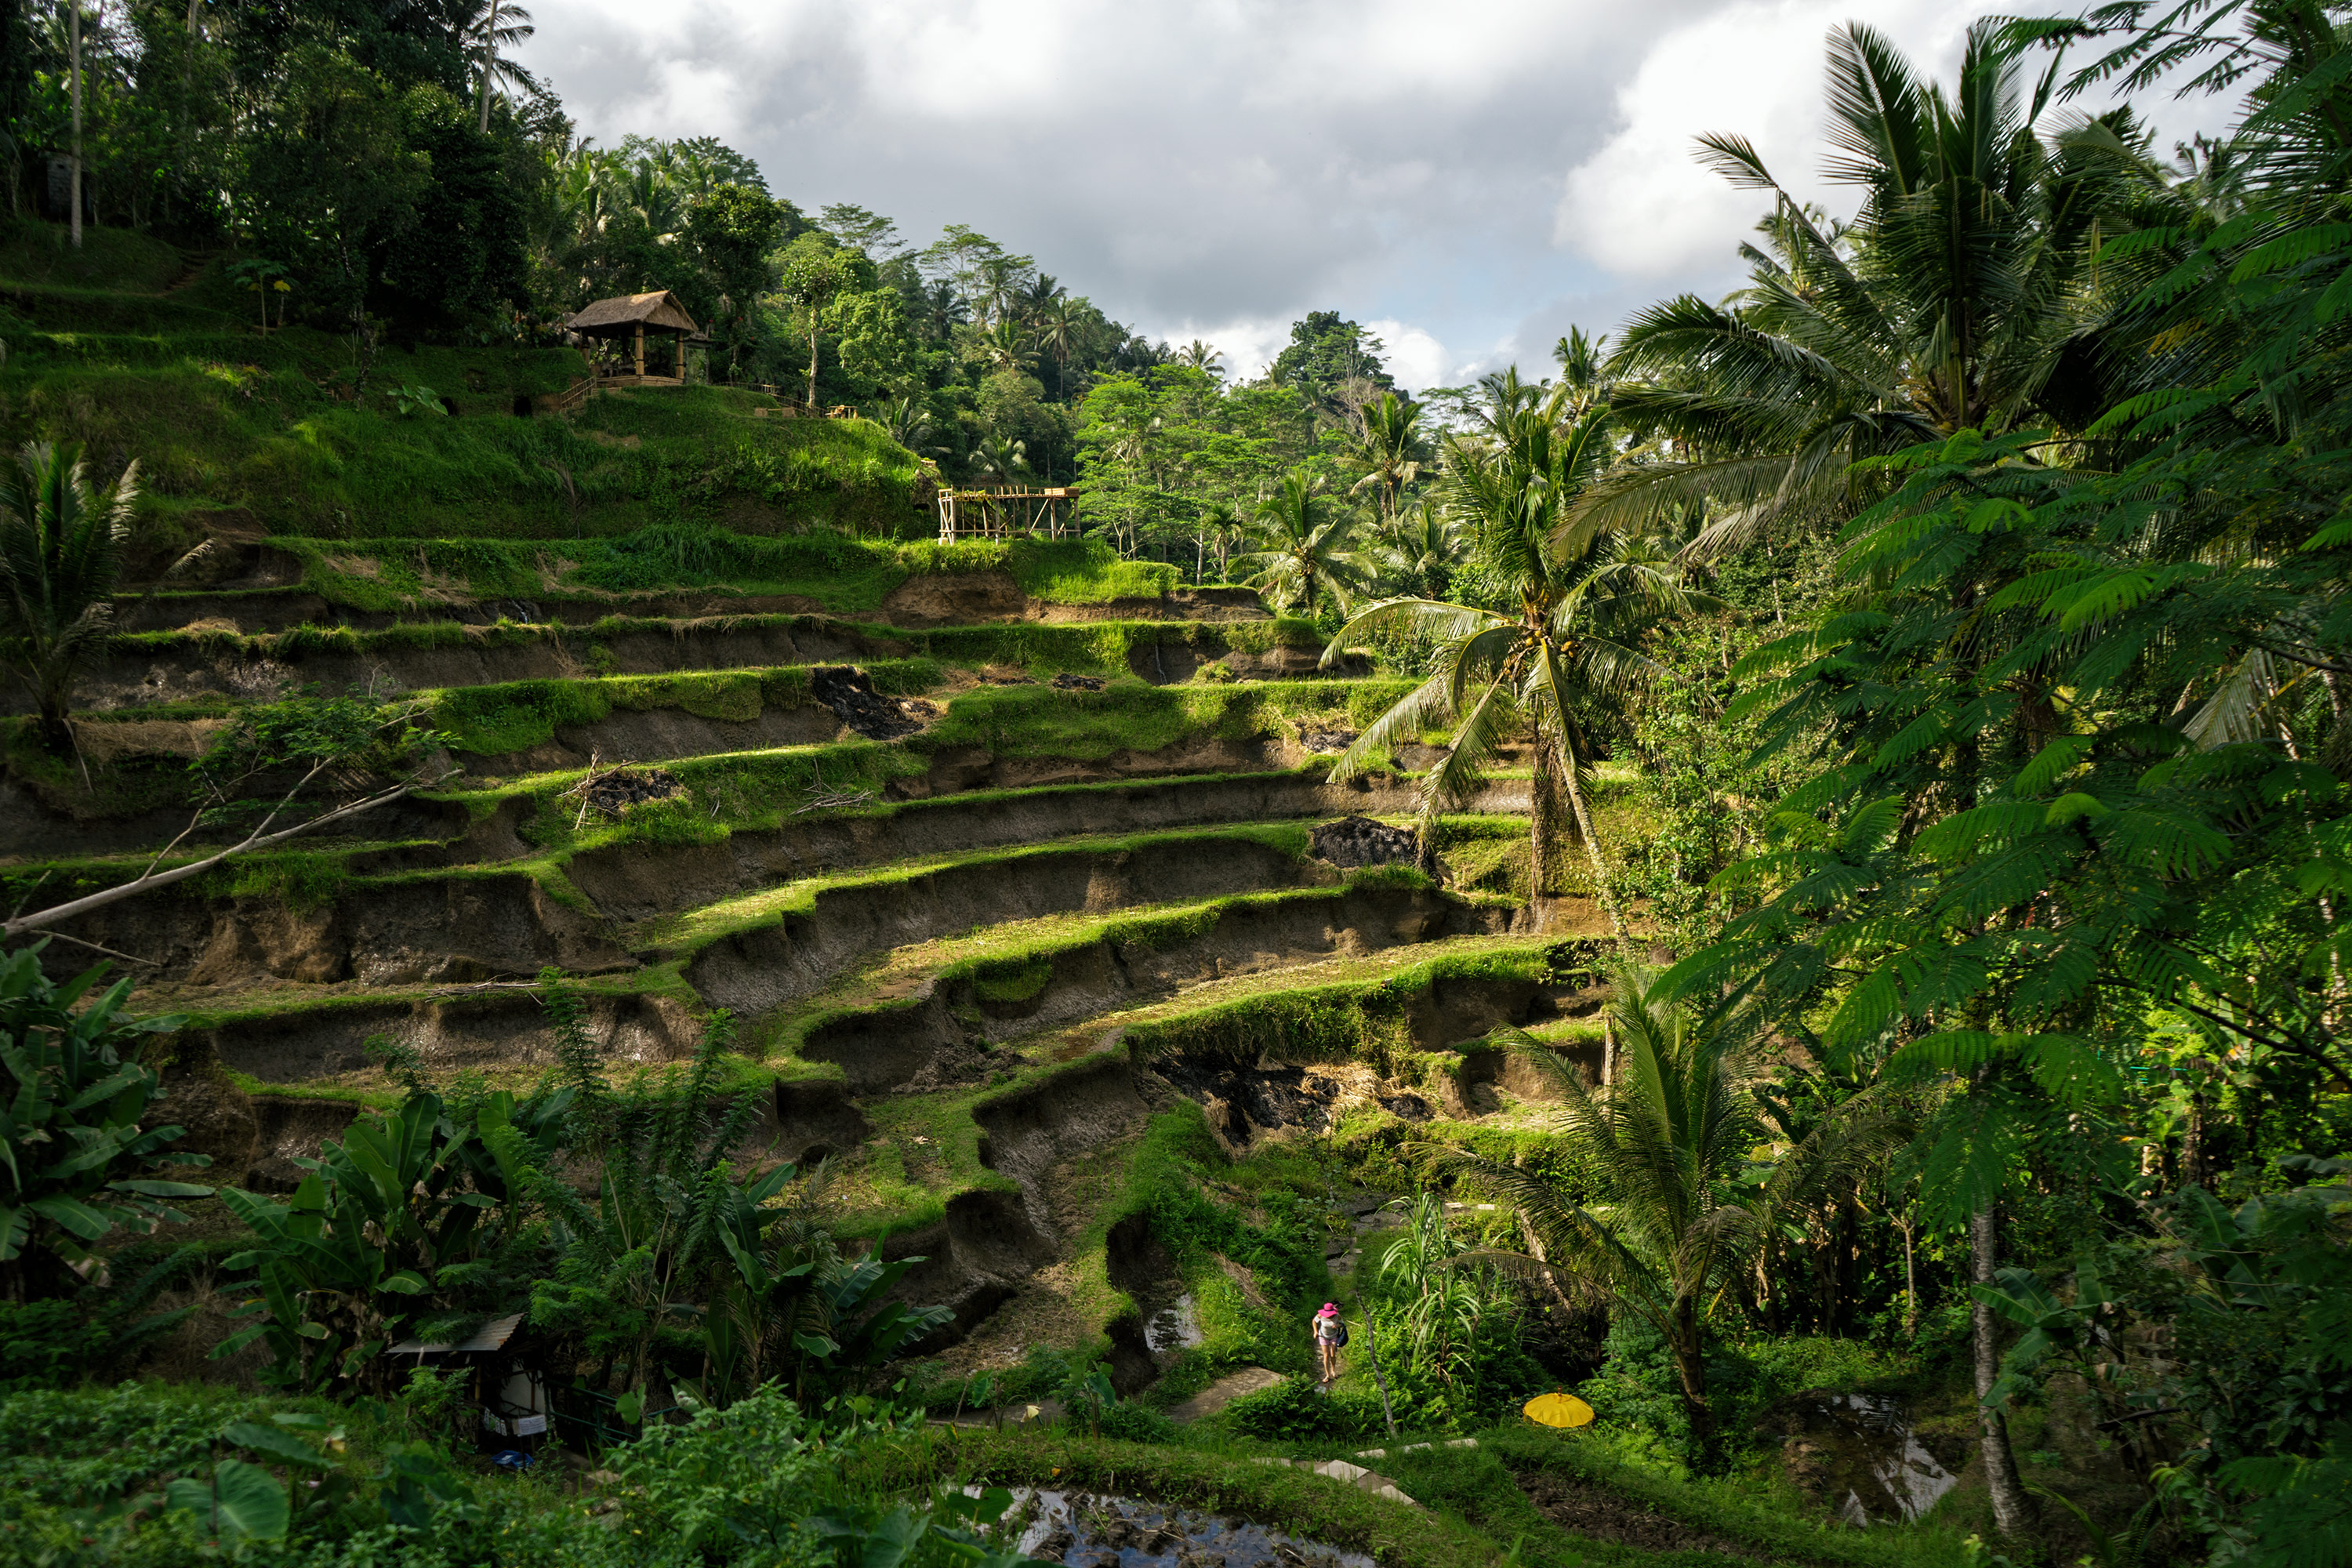 Bali Ubud Tegalalang Rice Terraces Views And Shadows